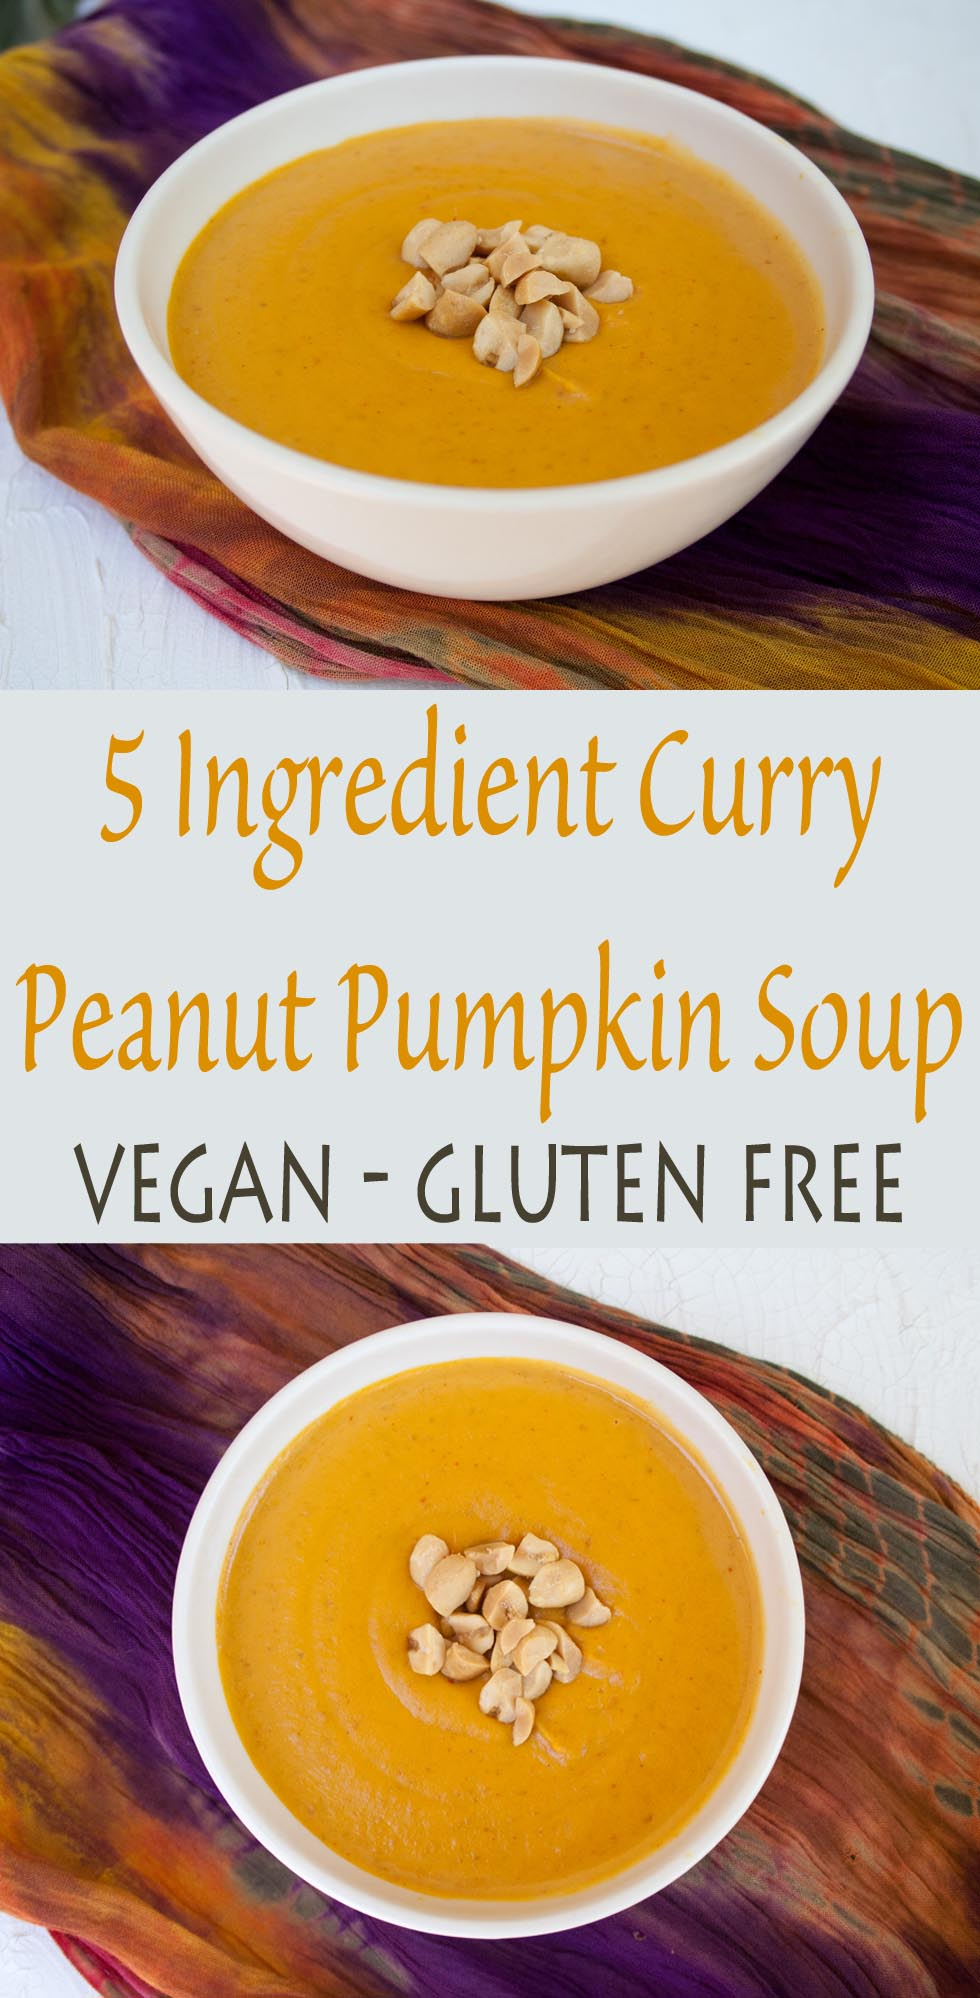 5 Ingredient Curry Peanut Pumpkin Soup collage photo with text.